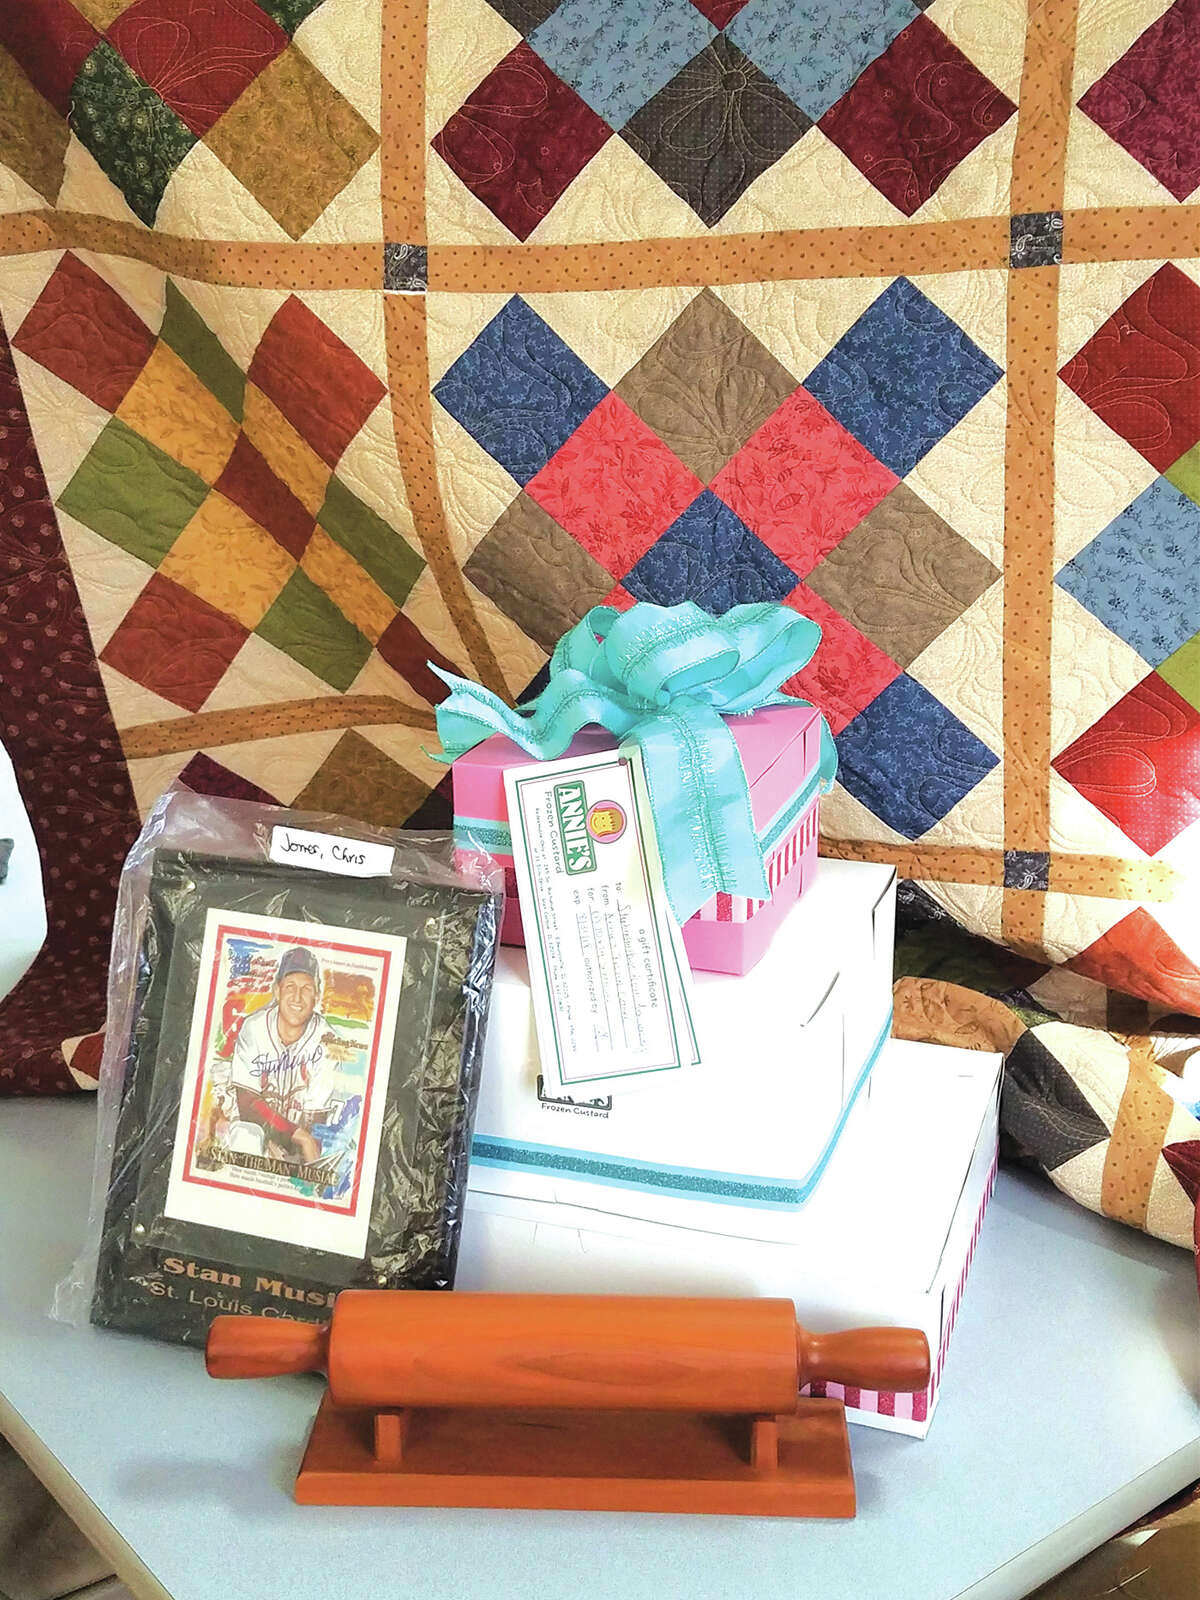 A quilt from Jen Mercer, cakes from Annie's Frozen Custard, a wooden rolling pin, and a signed Stan Musial print are among items that will be auctioned off on Feb. 17.